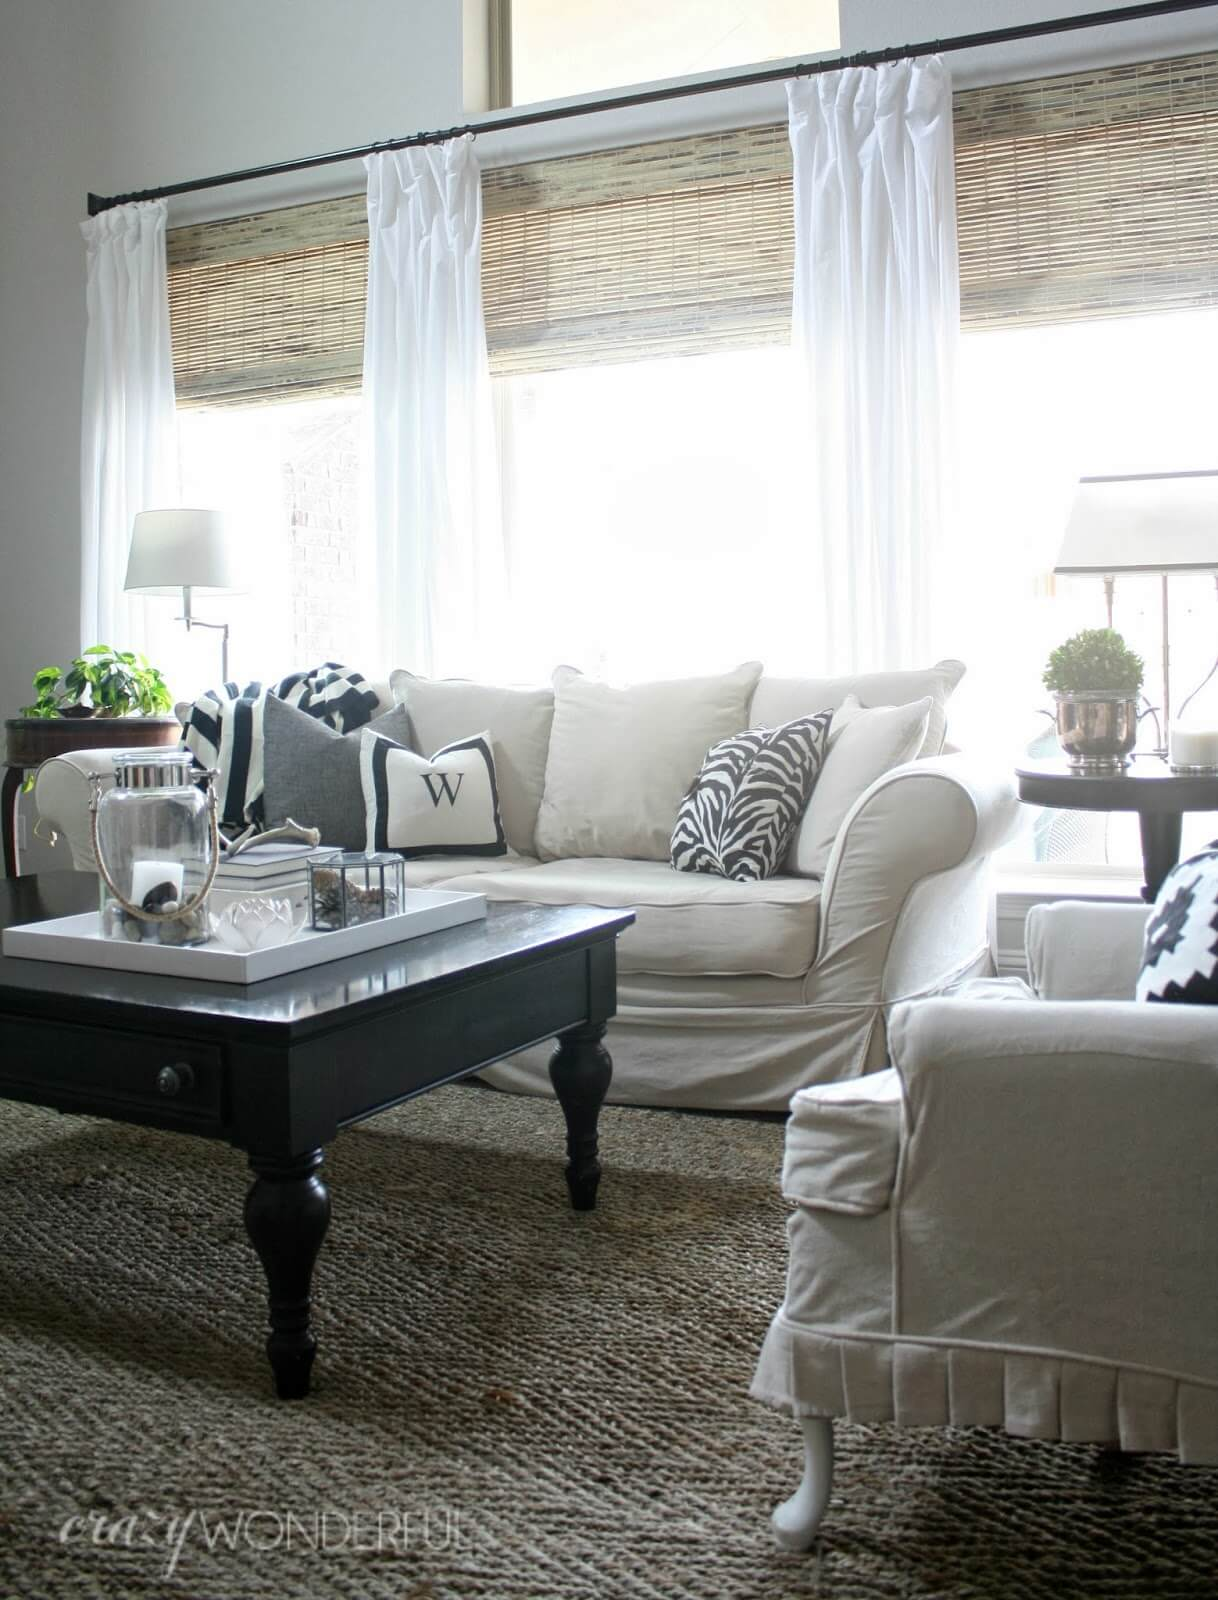 12 Best Living Room Curtain Ideas and Designs for 2020 on Living Room Curtains Ideas  id=47242